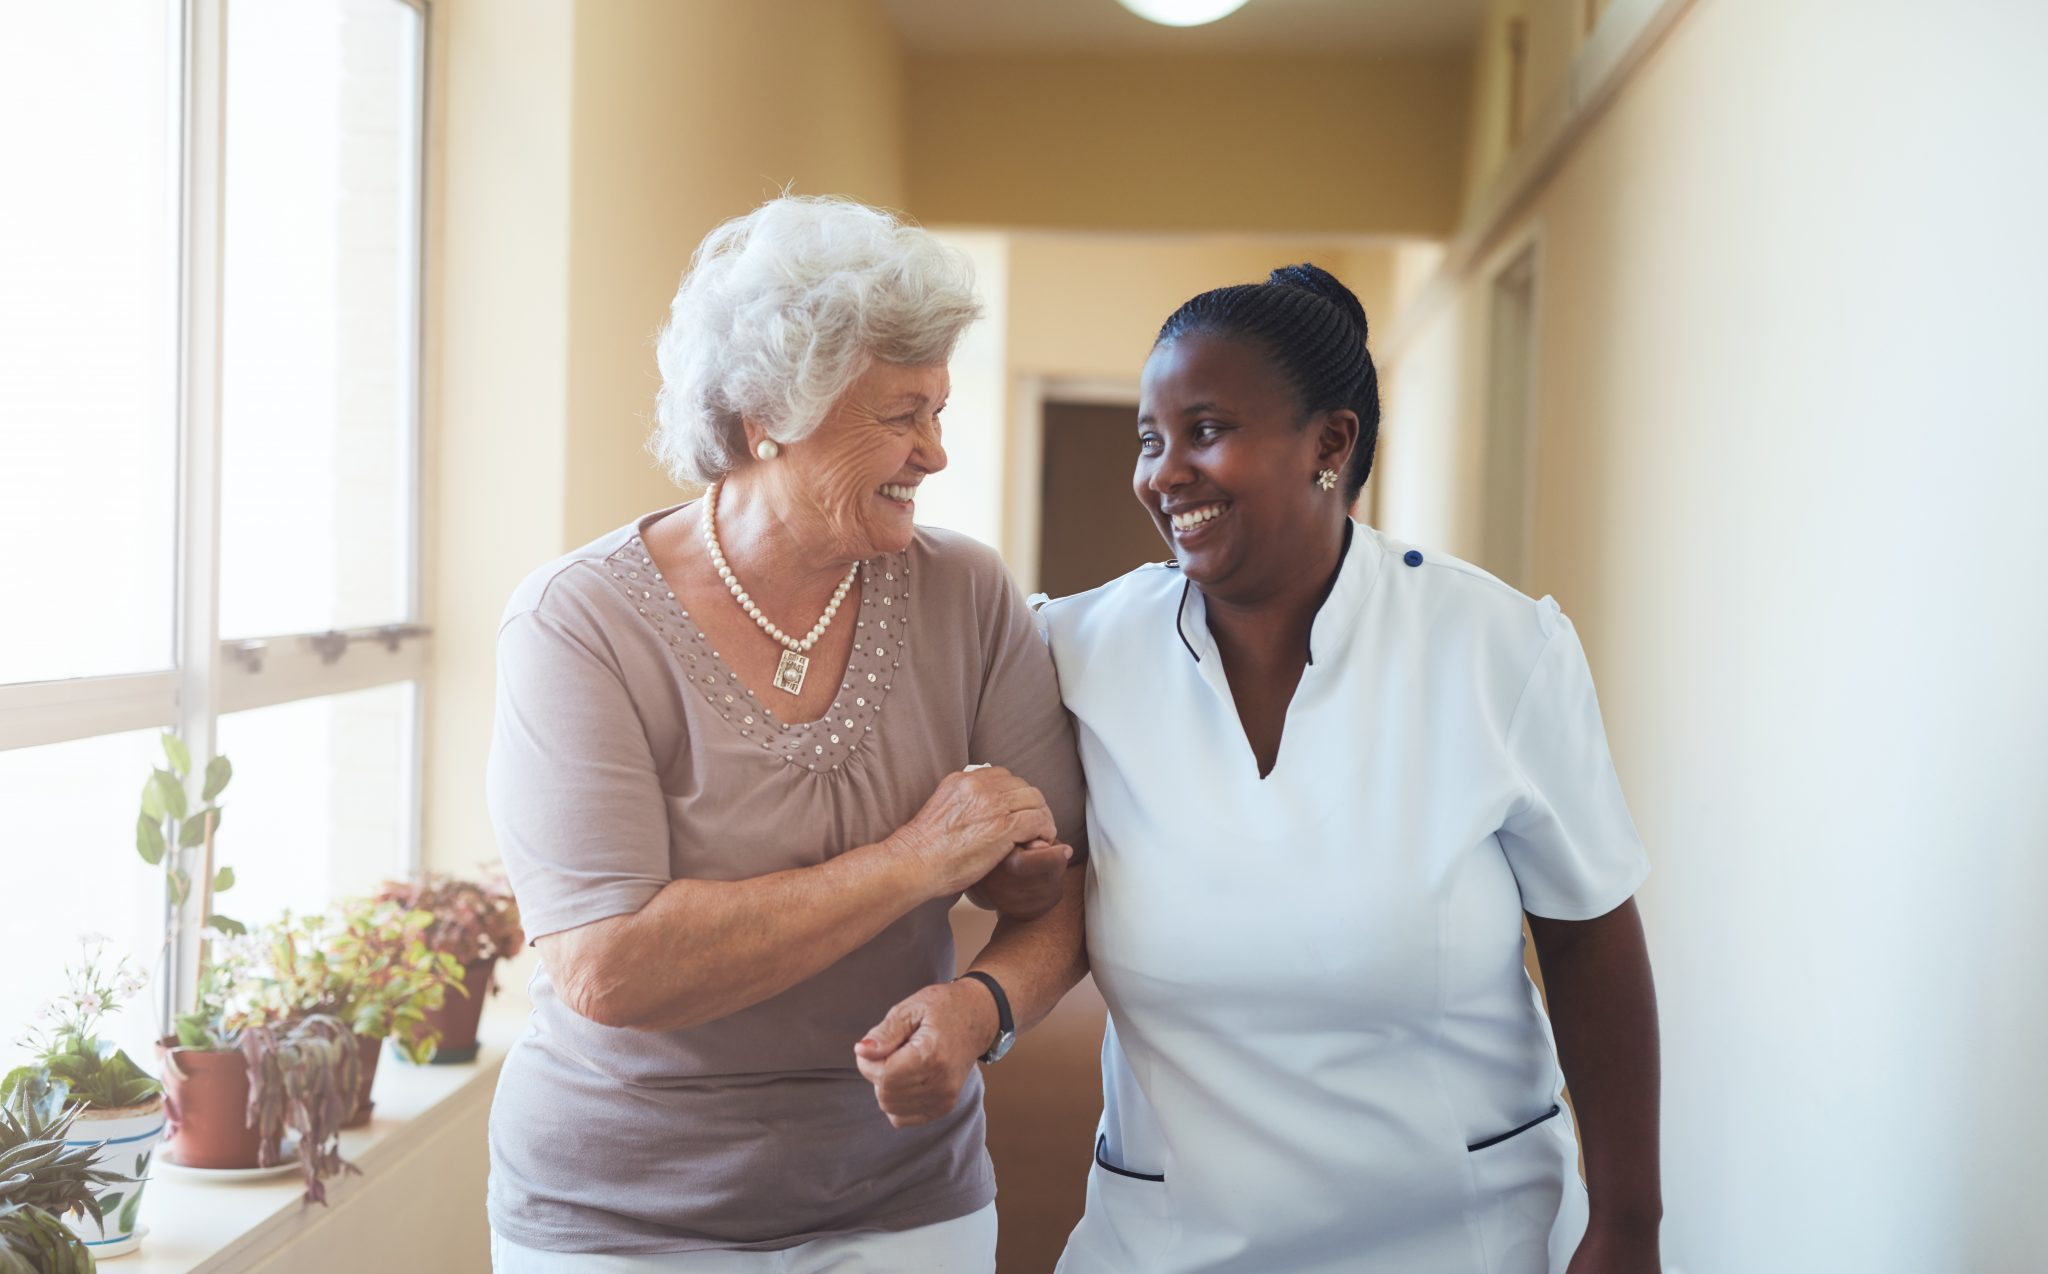 Smiling home caregiver and senior woman walking together through a corridor and holding hands.